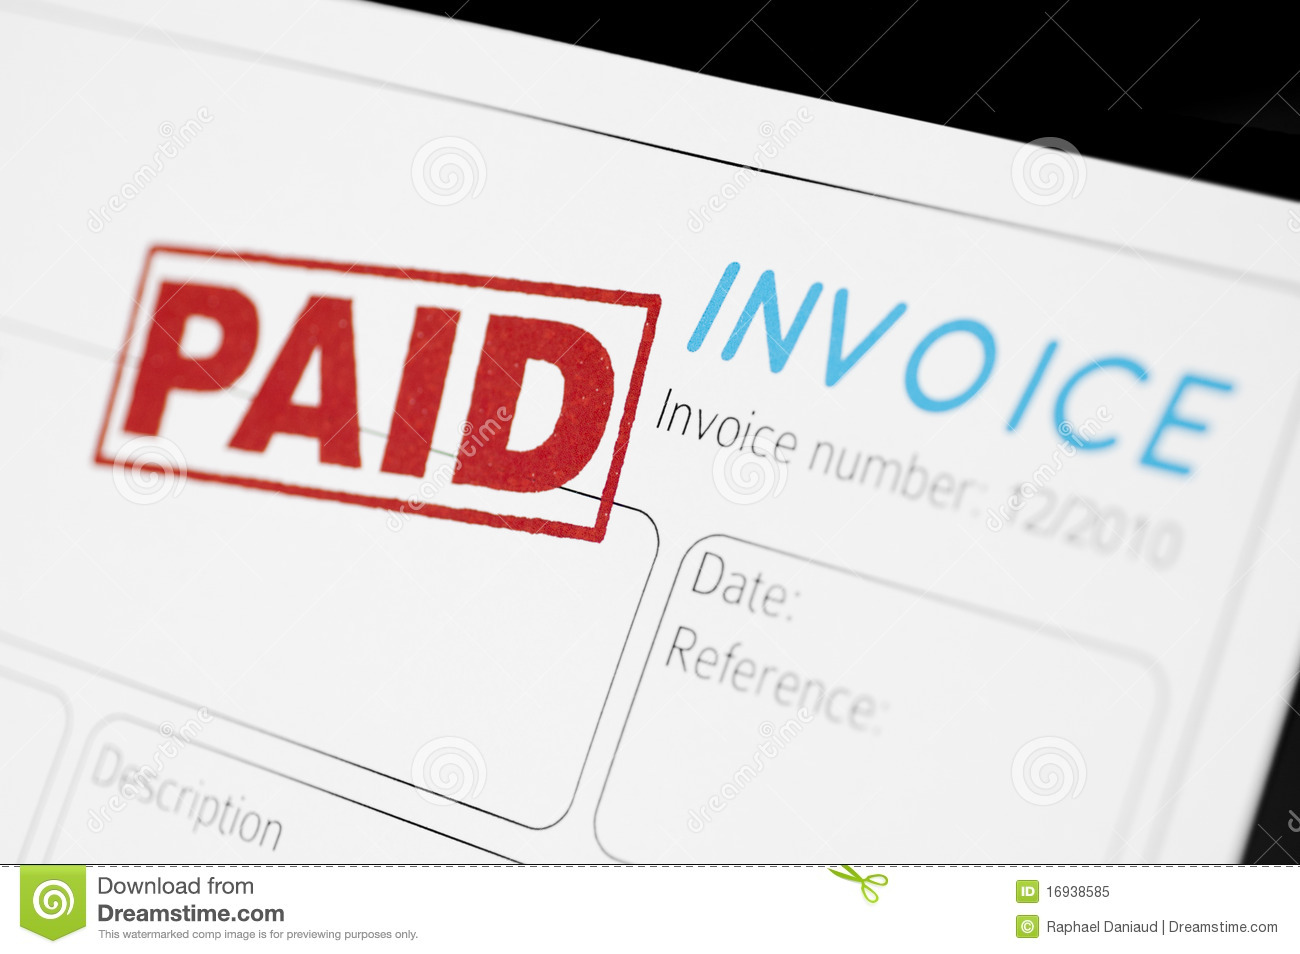 Paid Invoice Royalty Free Stock Photo   Image  16938585